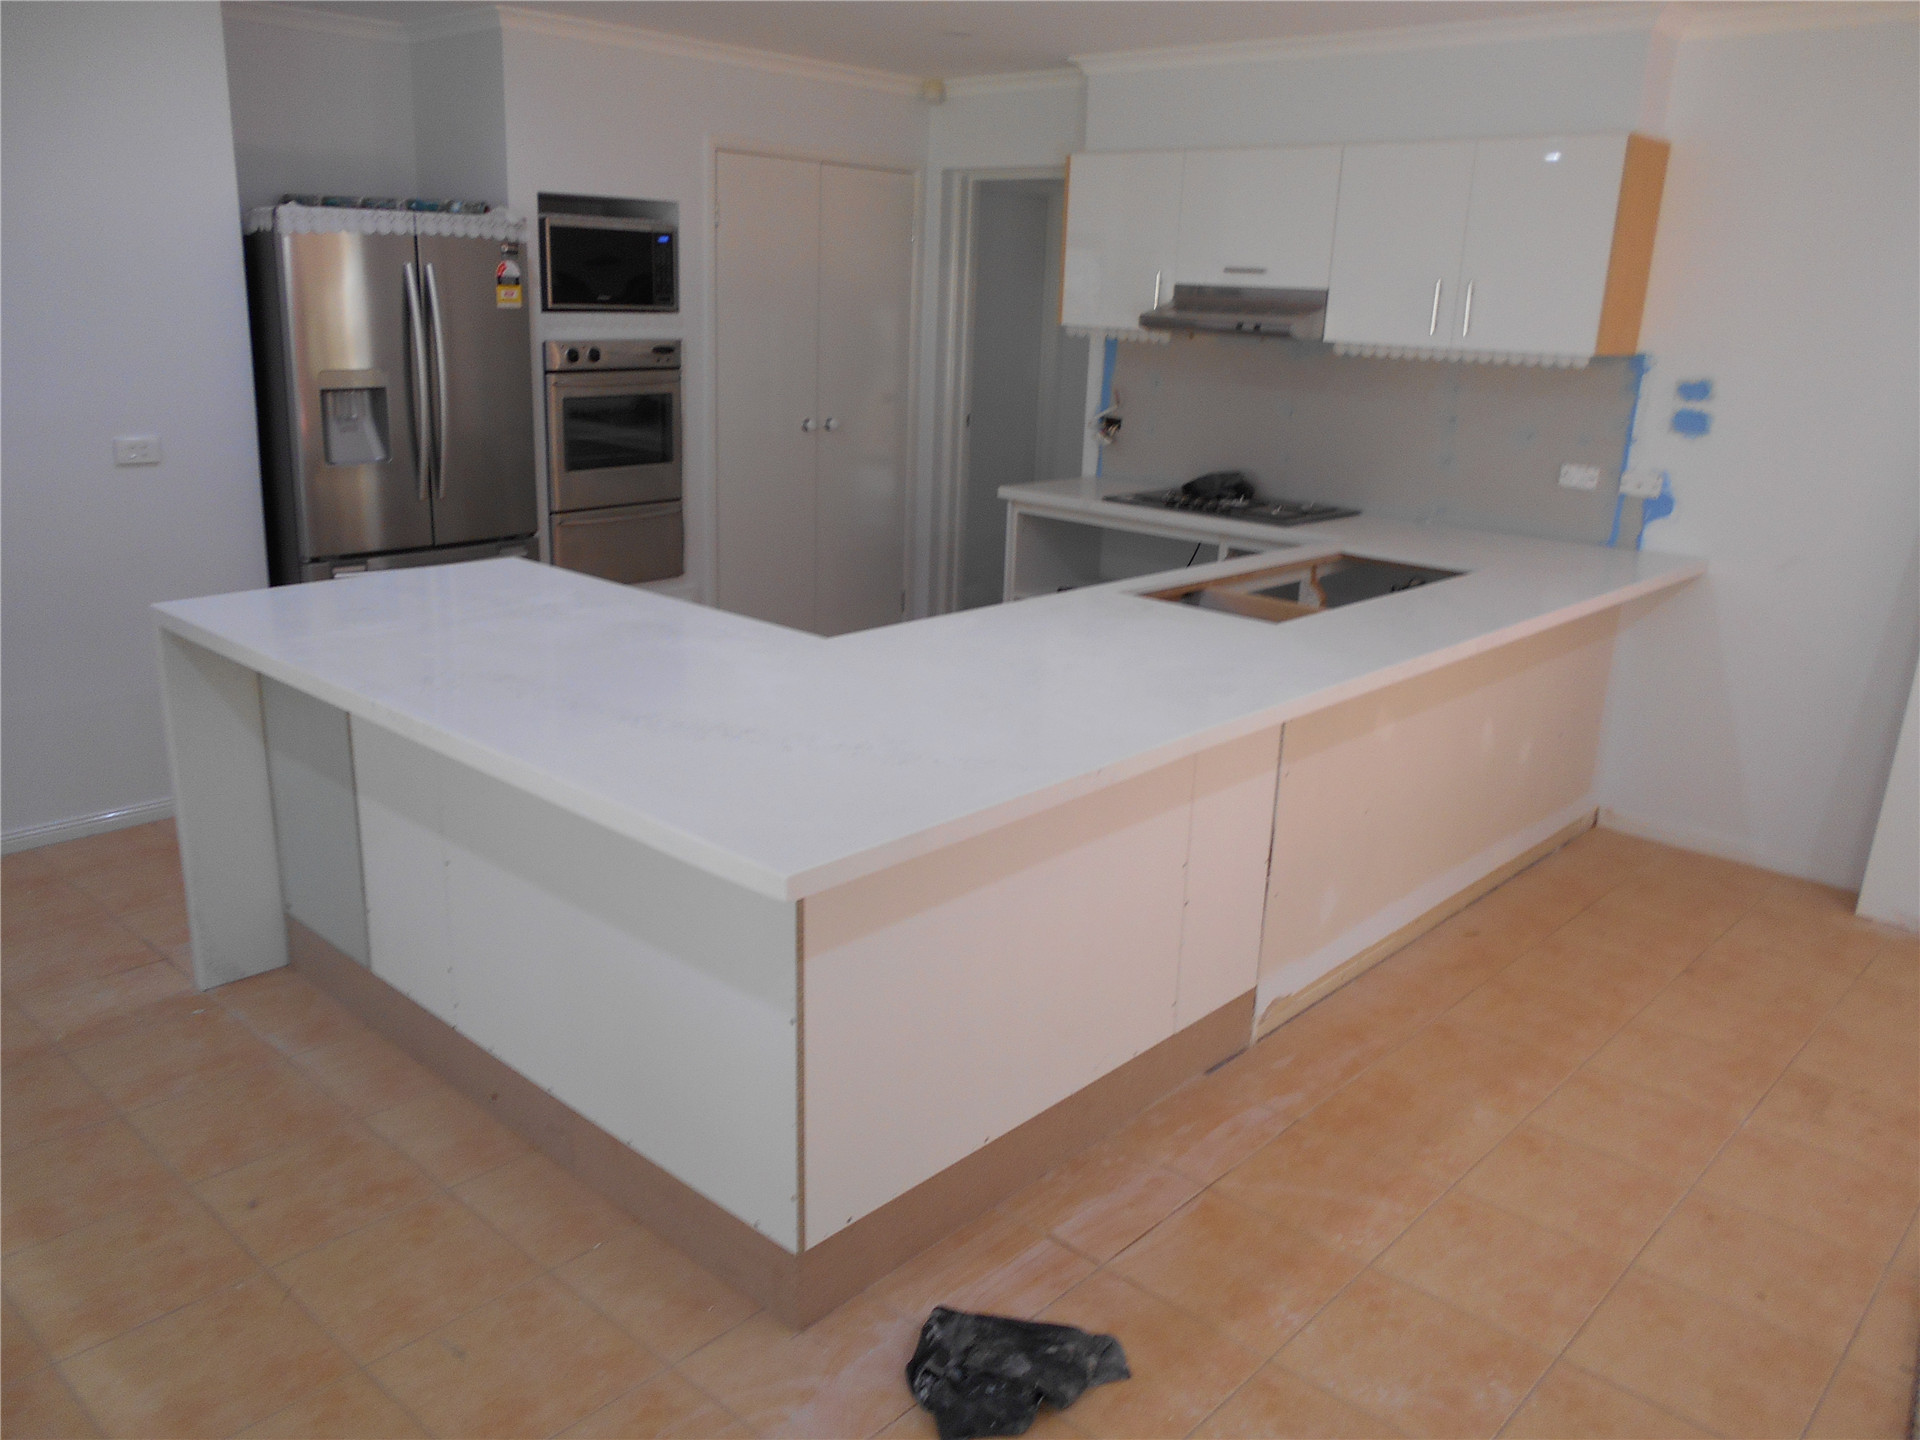 cheap stone benchtops Melbourne project image 8